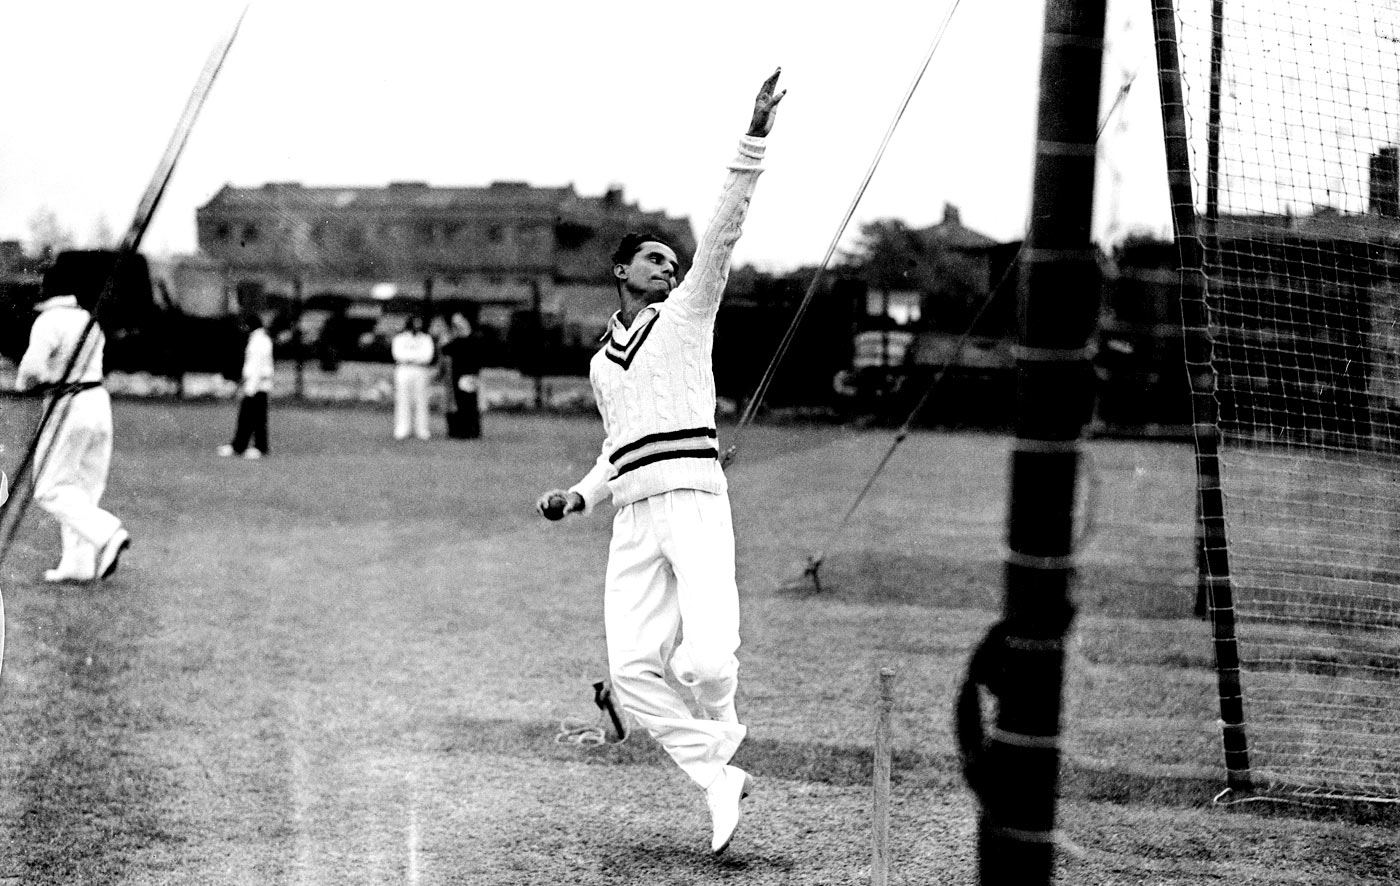 Vijay Hazare scored 1344 first-class runs and took 54 wickets on the tour